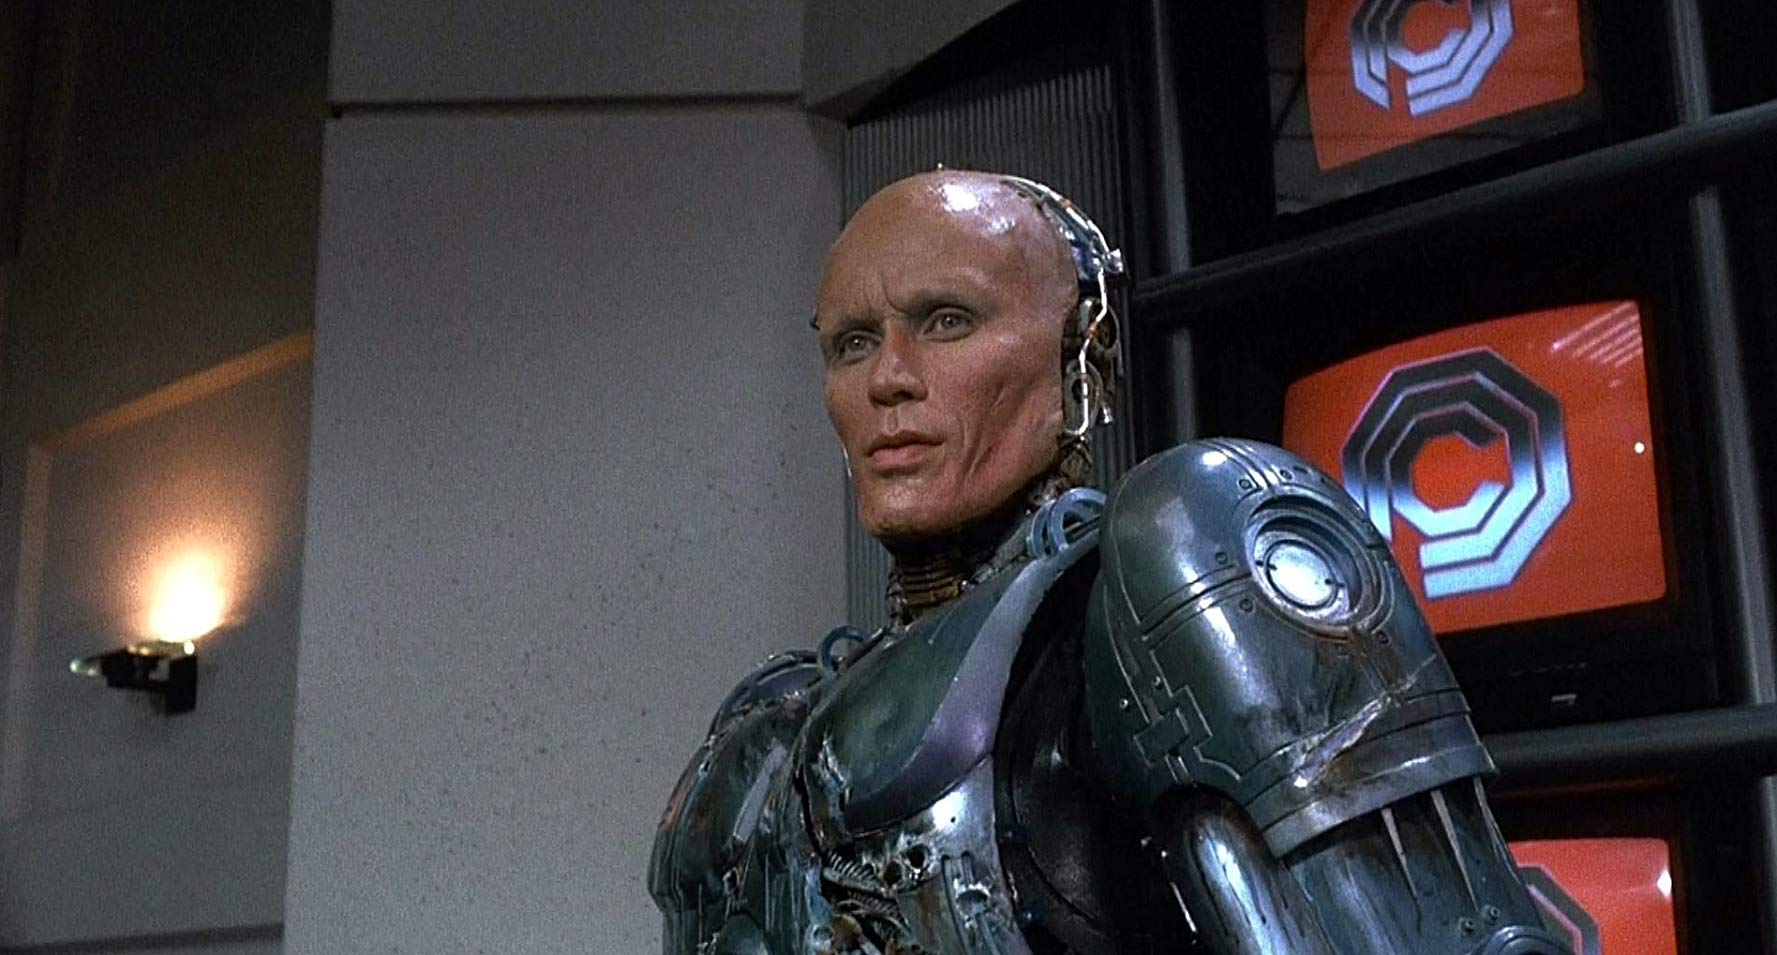 Peter Weller as Alex Murphy in Robocop (1987)